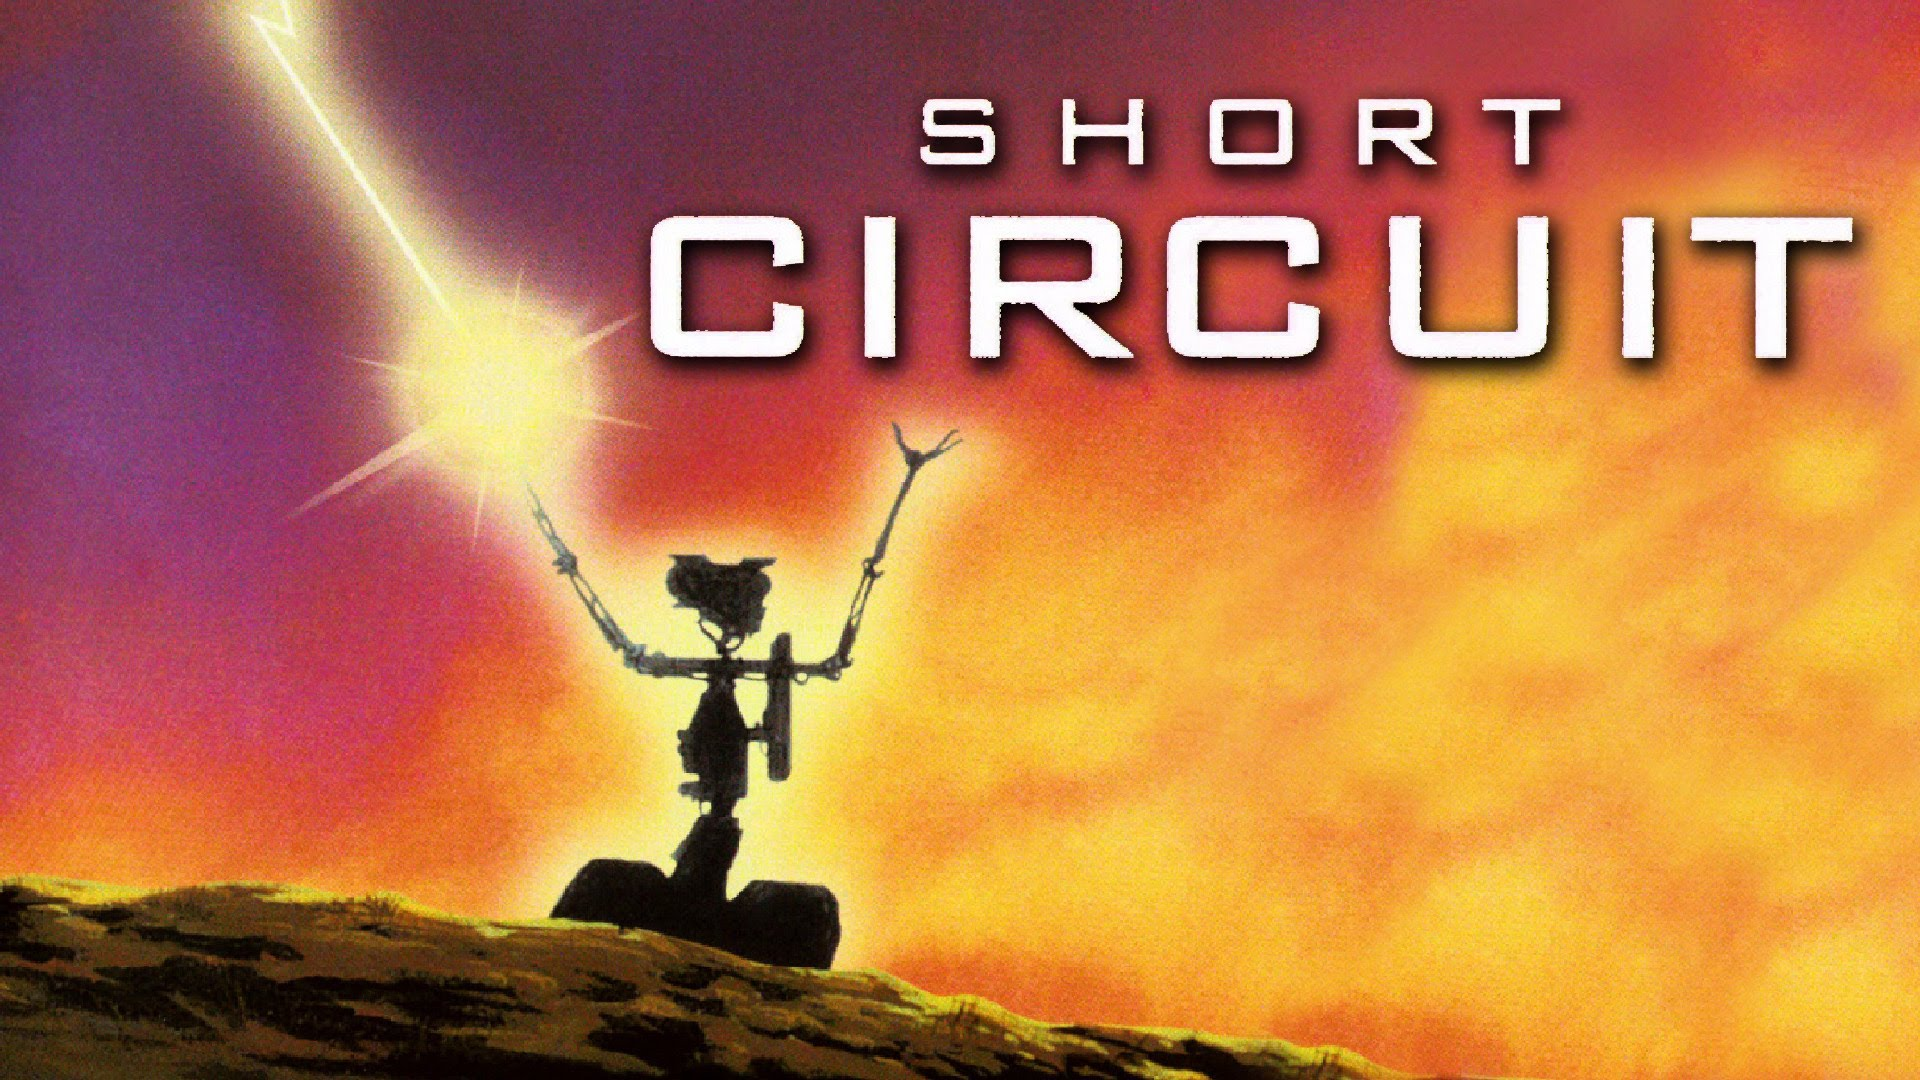 Short Circuit 2 Hd Wallpapers Backgrounds Wallpaper Abyss